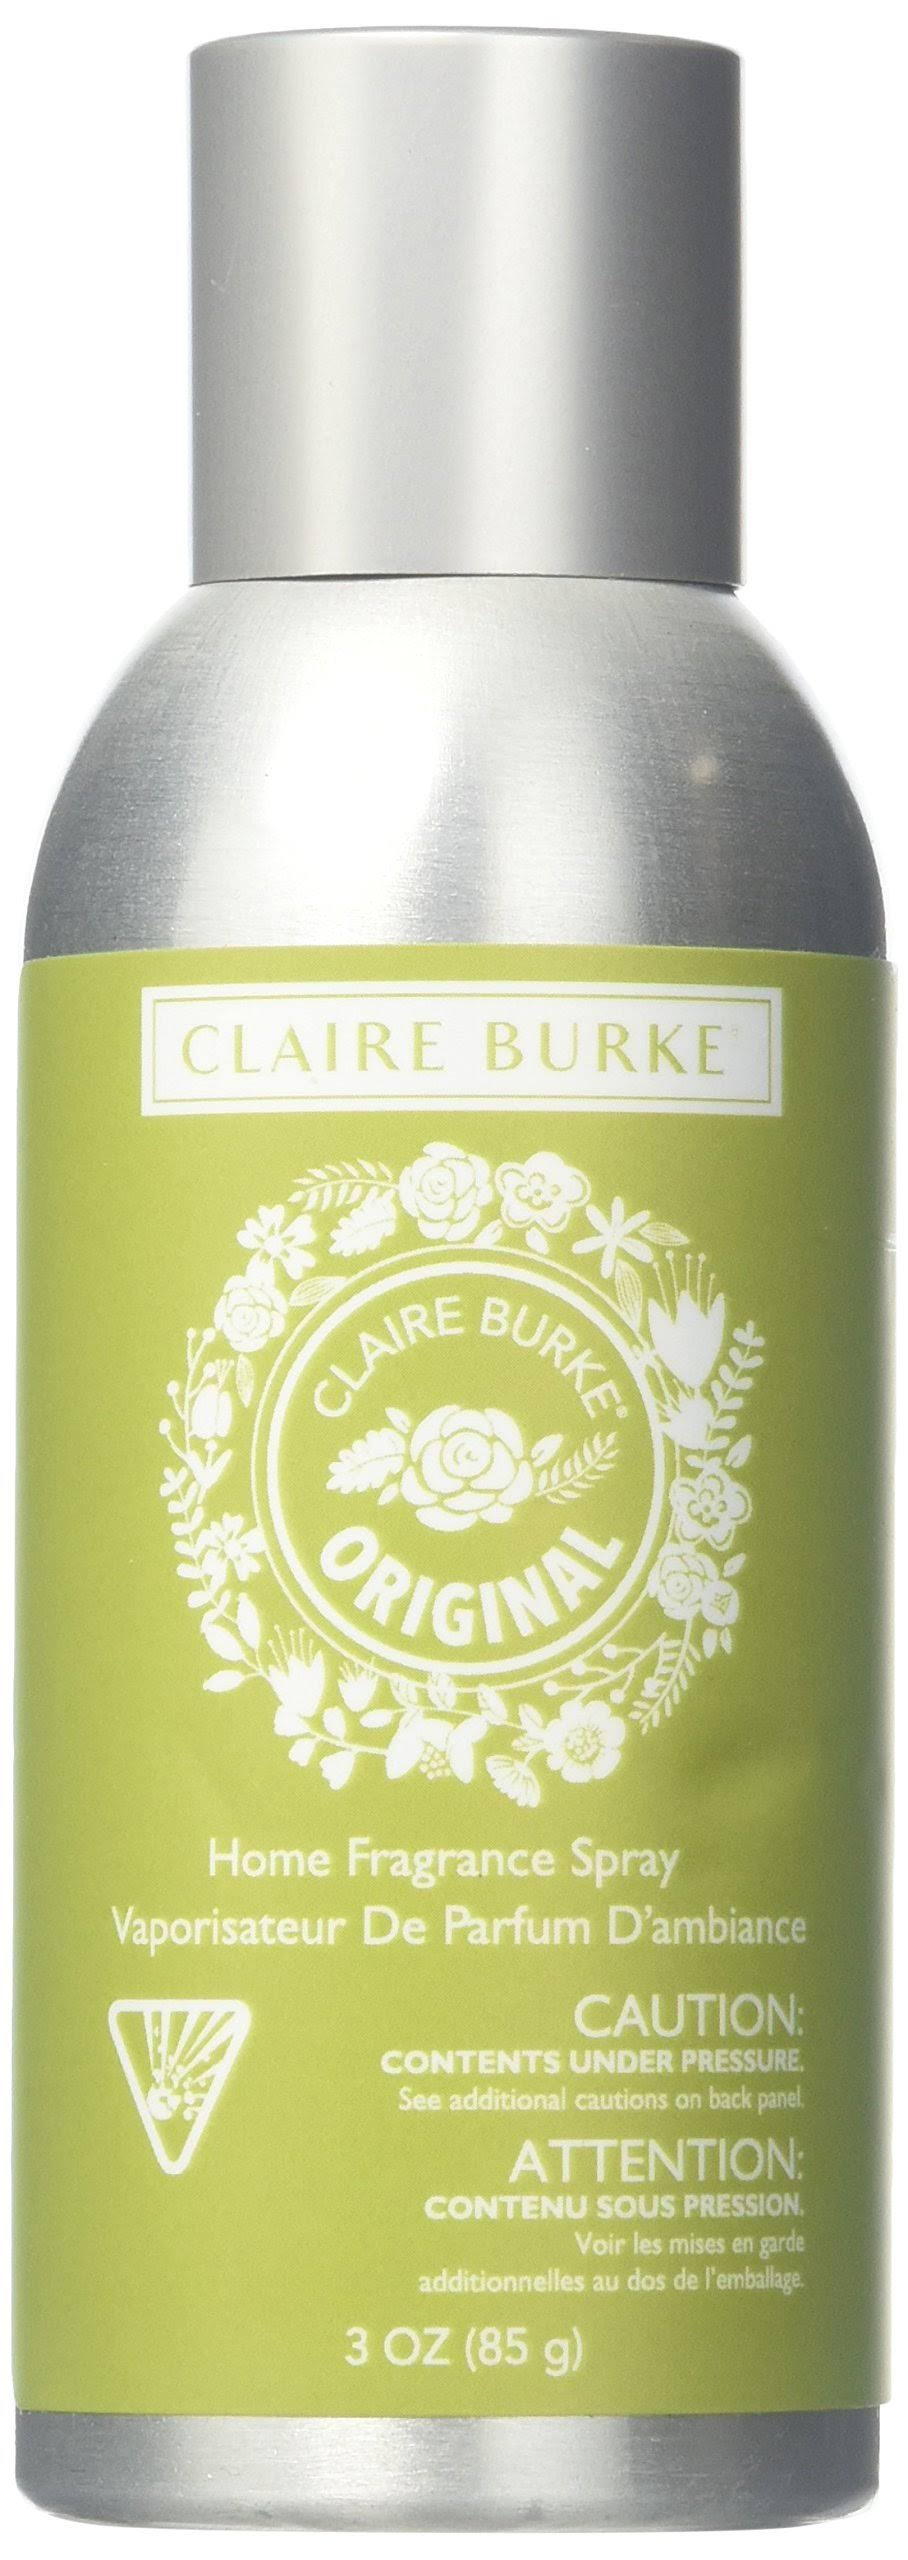 Claire Burke Original Home Spray Kitchen Décor Fragrance Scent, Small, Green